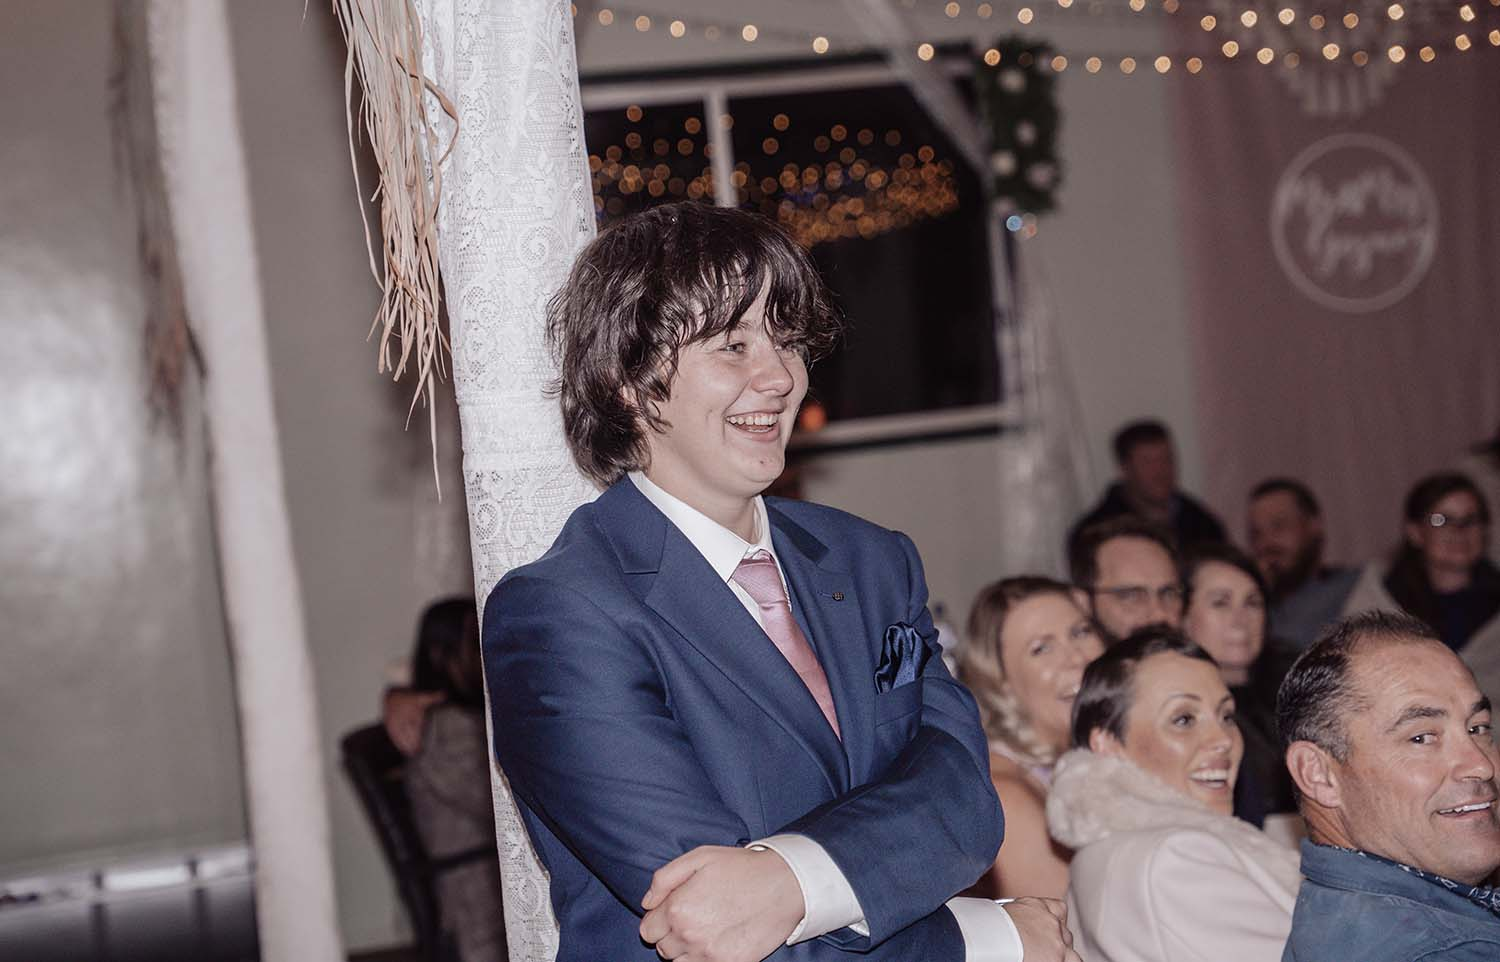 Wedding Photography - reception guest candid